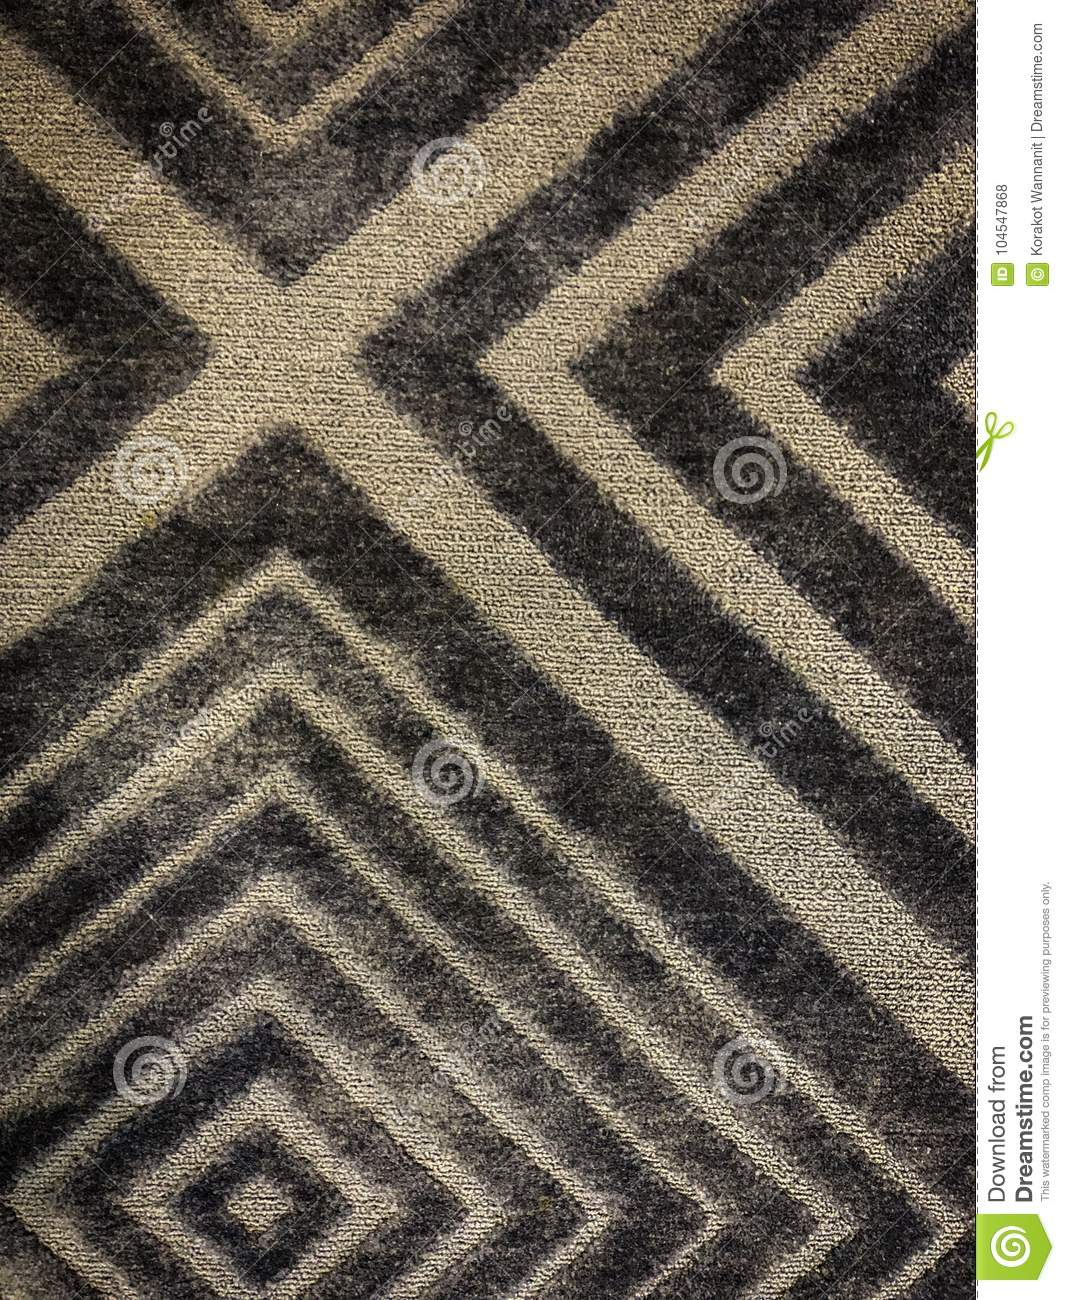 Download Modern Square Of Yellow And Brown Carpet On The Floor Image Stock Photo